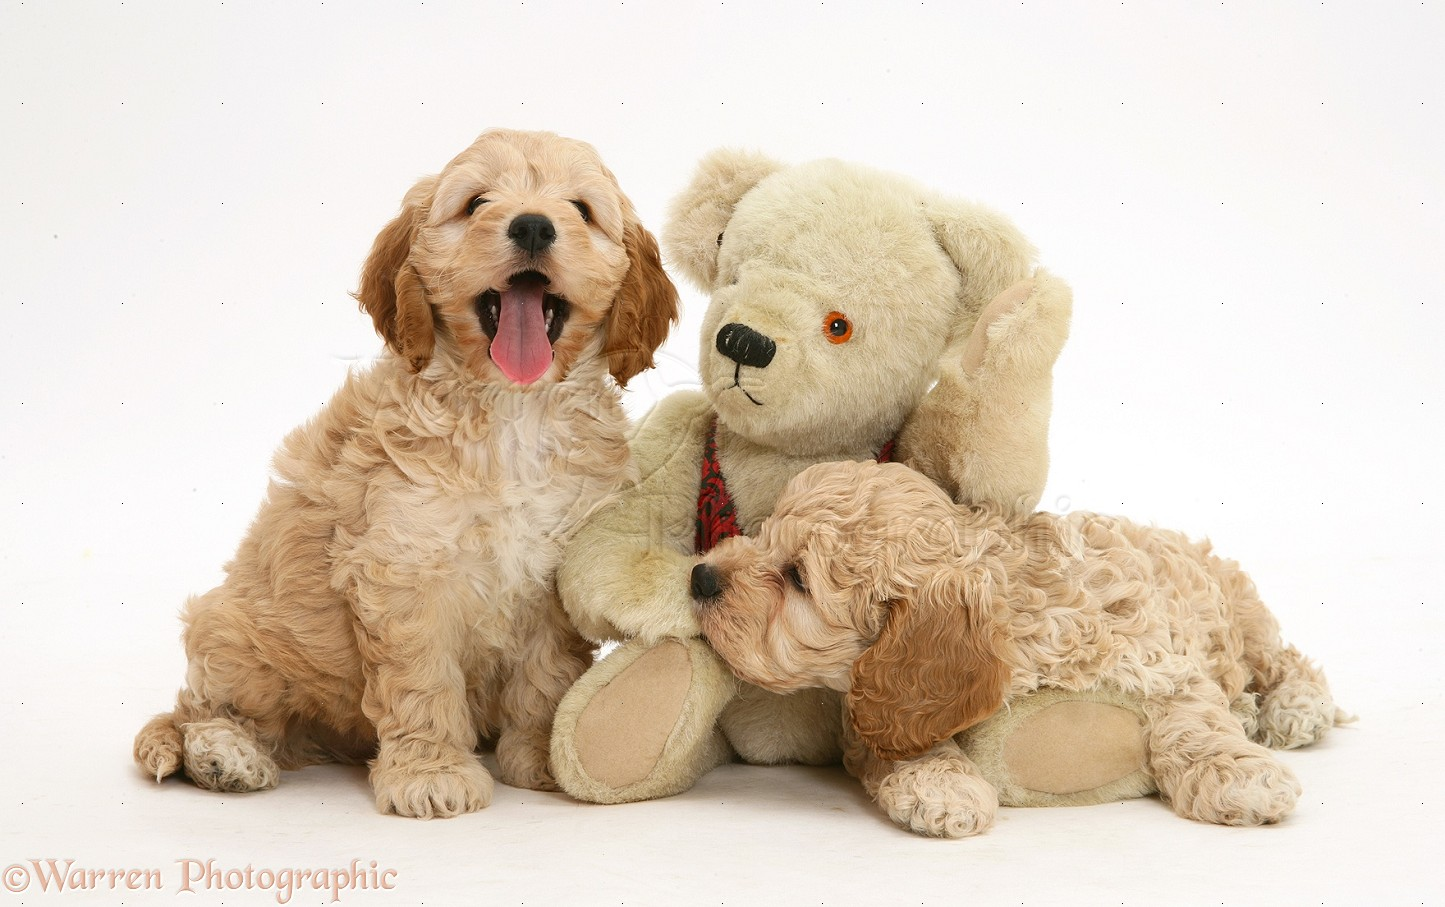 Dogs American Cockapoo Puppies With A Teddy Bear Photo Wp24671